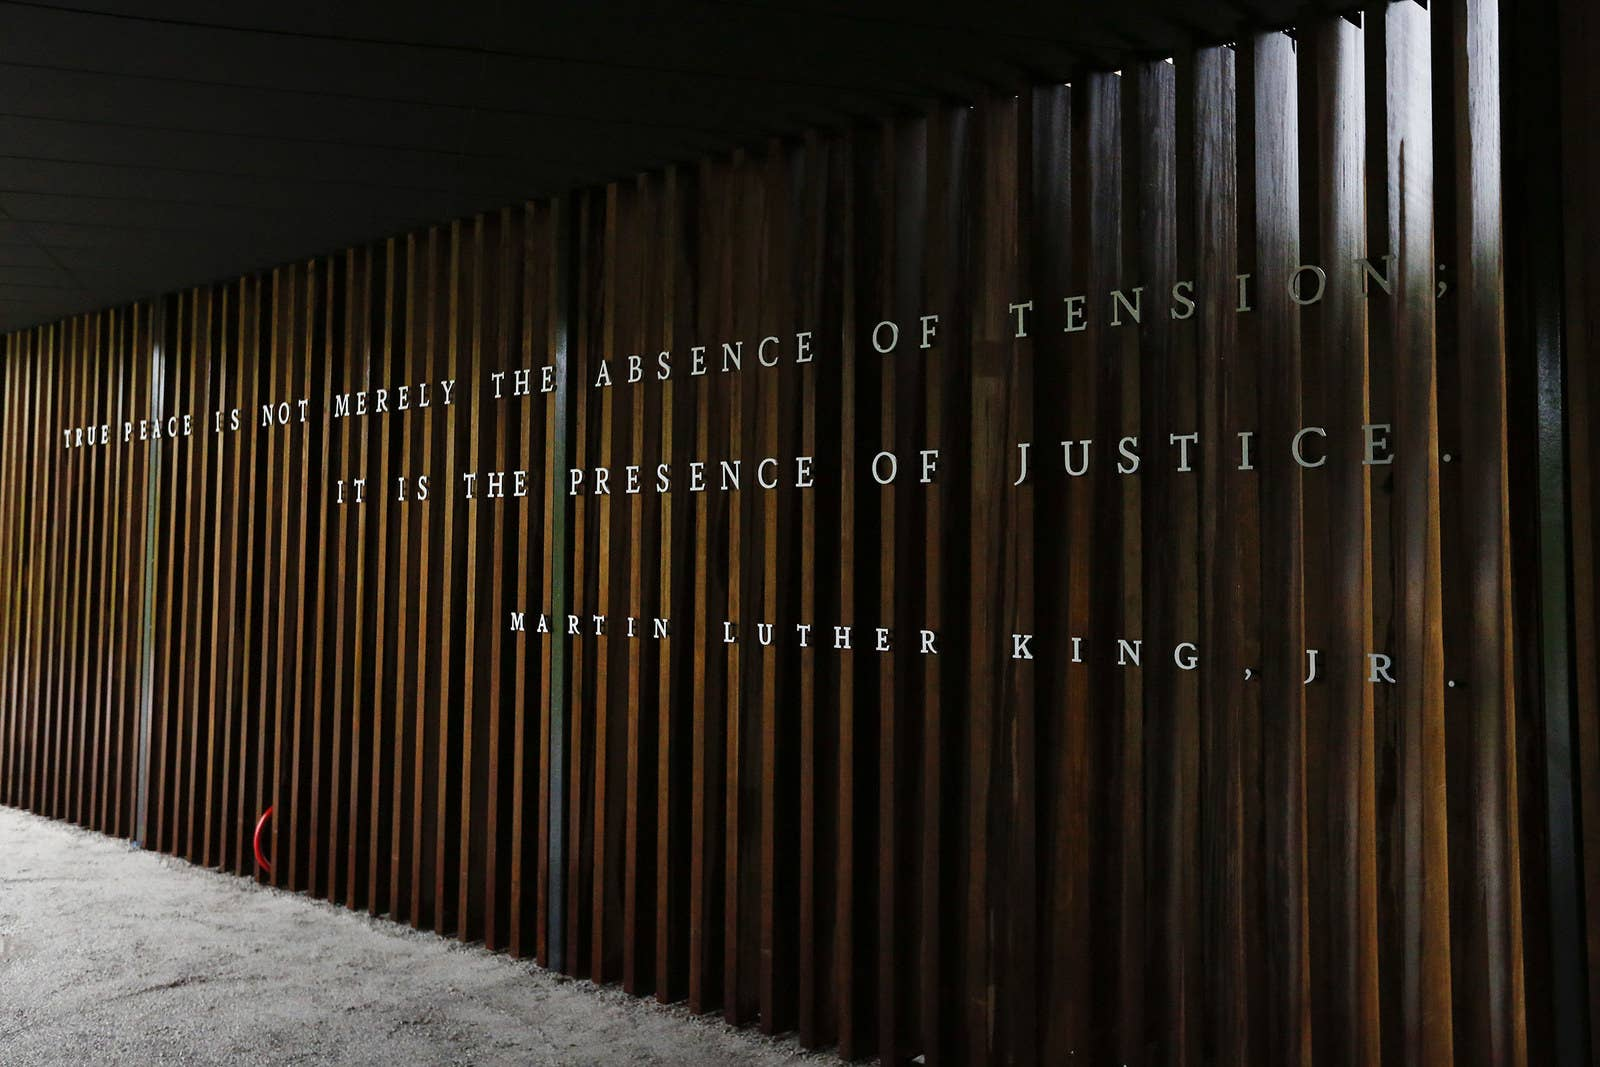 A quote by Martin Luther King Jr. is on display on the inside walkway of The National Memorial for Peace and Justice.